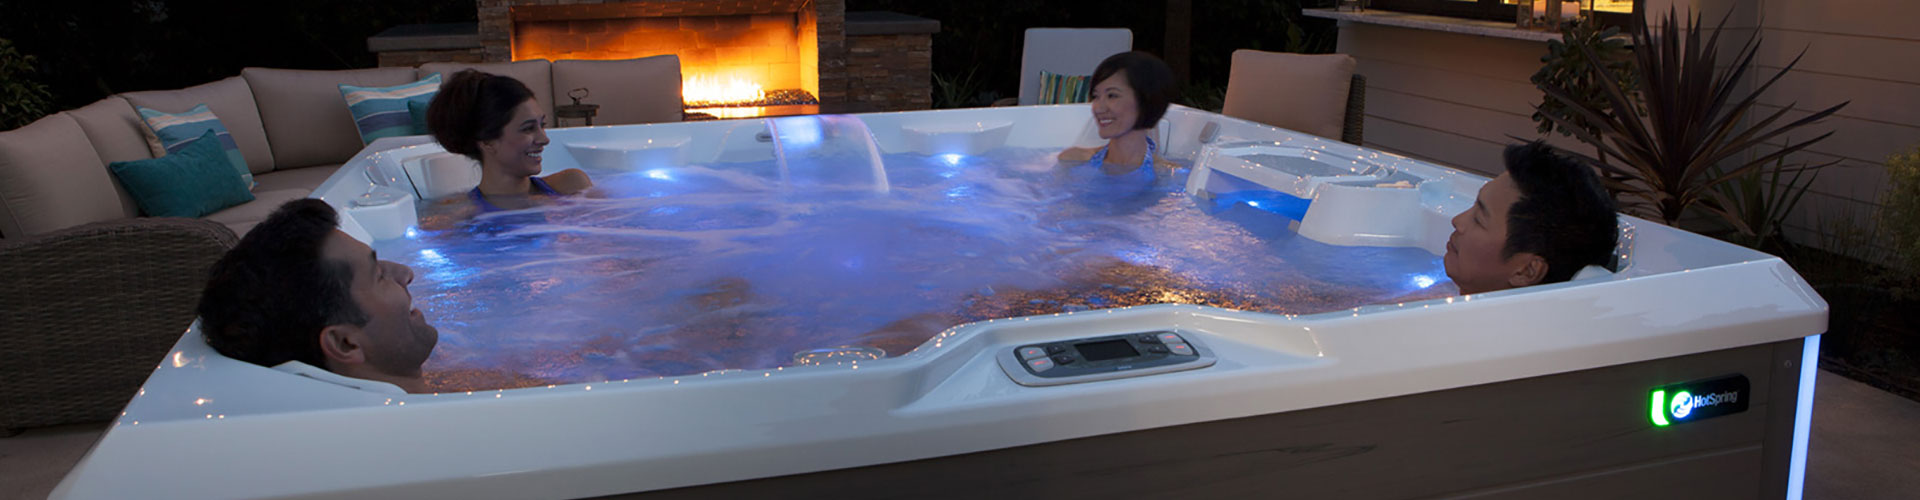 3 Ways to Get a Better Night's Sleep, Hot Tubs St. Louis